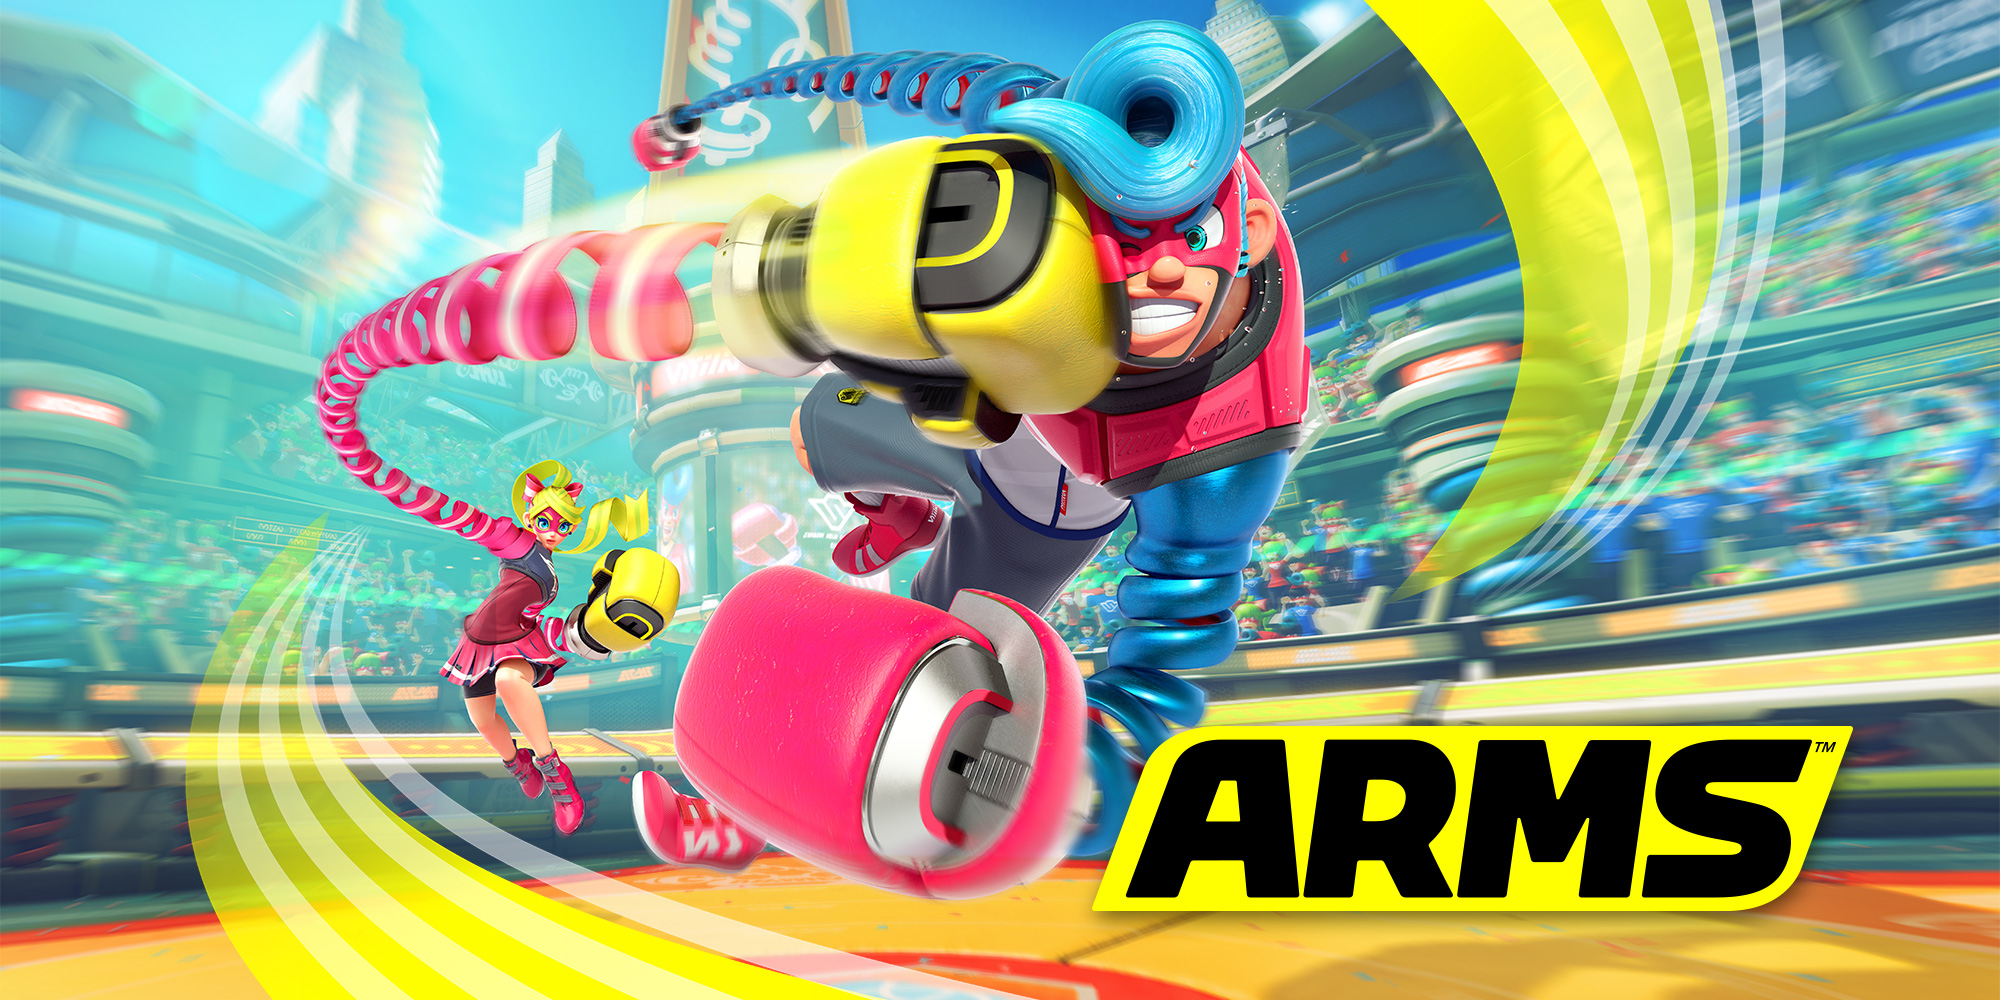 ARMS Lands A Solid Hit To The Nintendo Switch